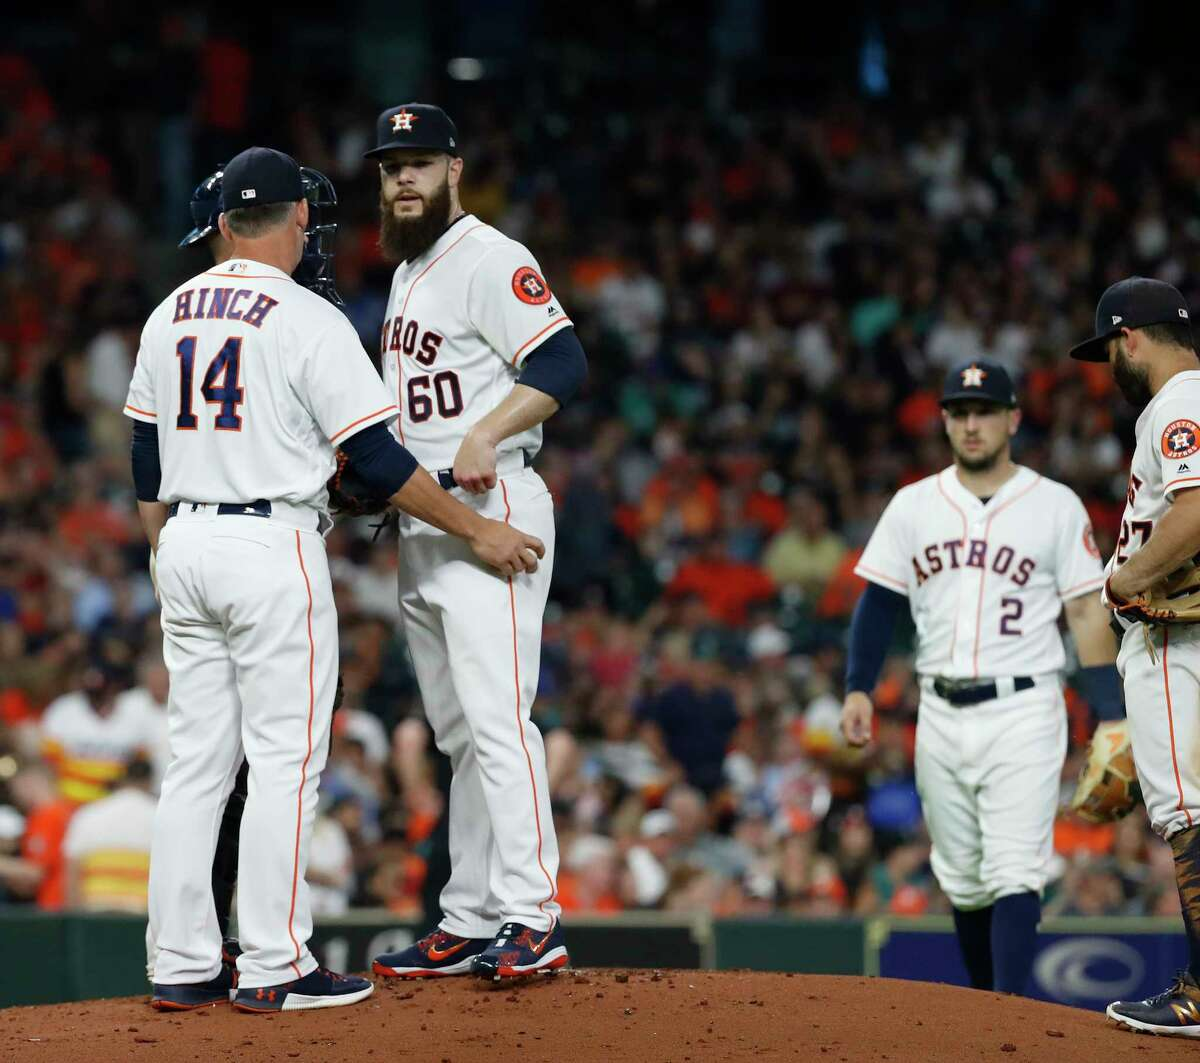 Houston Astros manager AJ Hinch (14) visits the mound to pull starting pitcher Dallas Keuchel (60) during the seventh inning of an MLB game at Minute Maid Park, Tuesday, June 5, 2018, in La Porte.